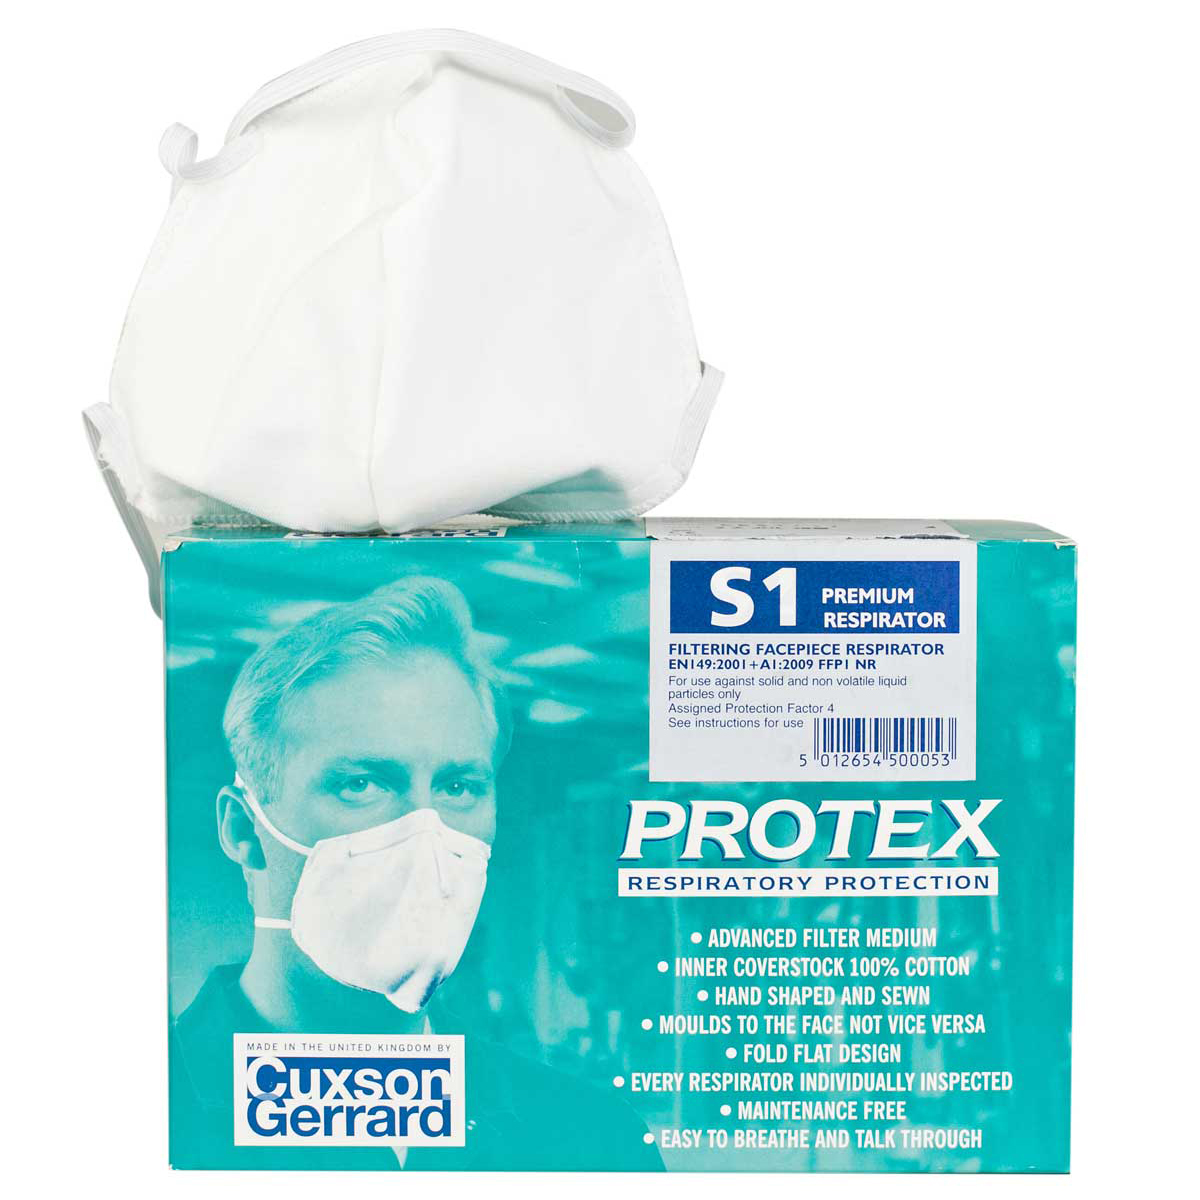 Pack of 25 Protex S1 Respiratory Mask